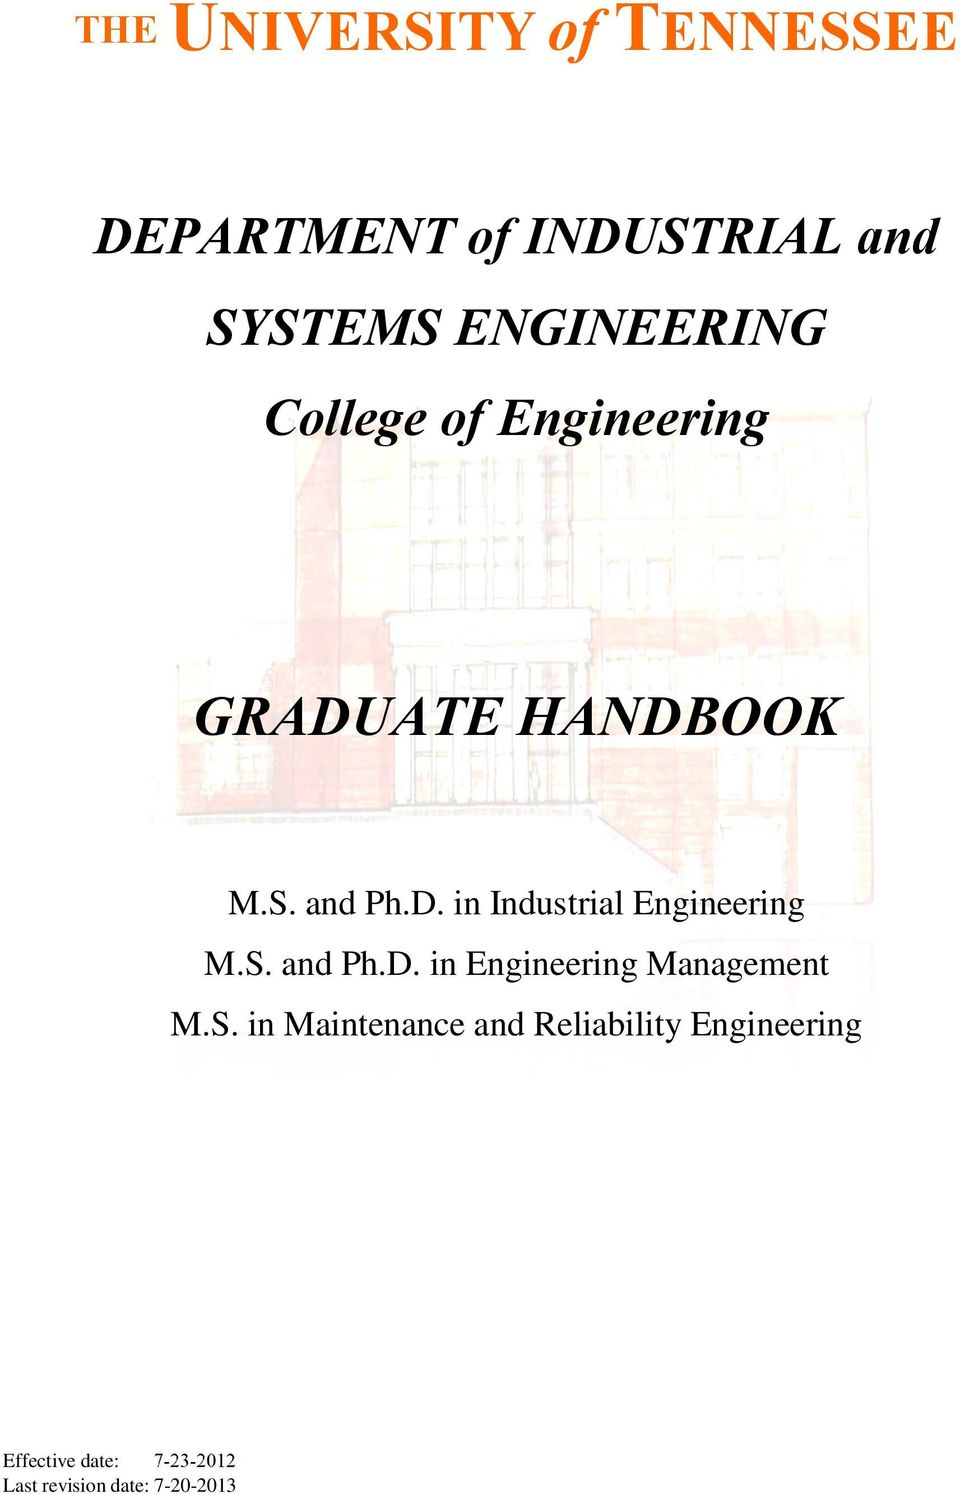 S. and Ph.D. in Engineering Management M.S. in Maintenance and Reliability